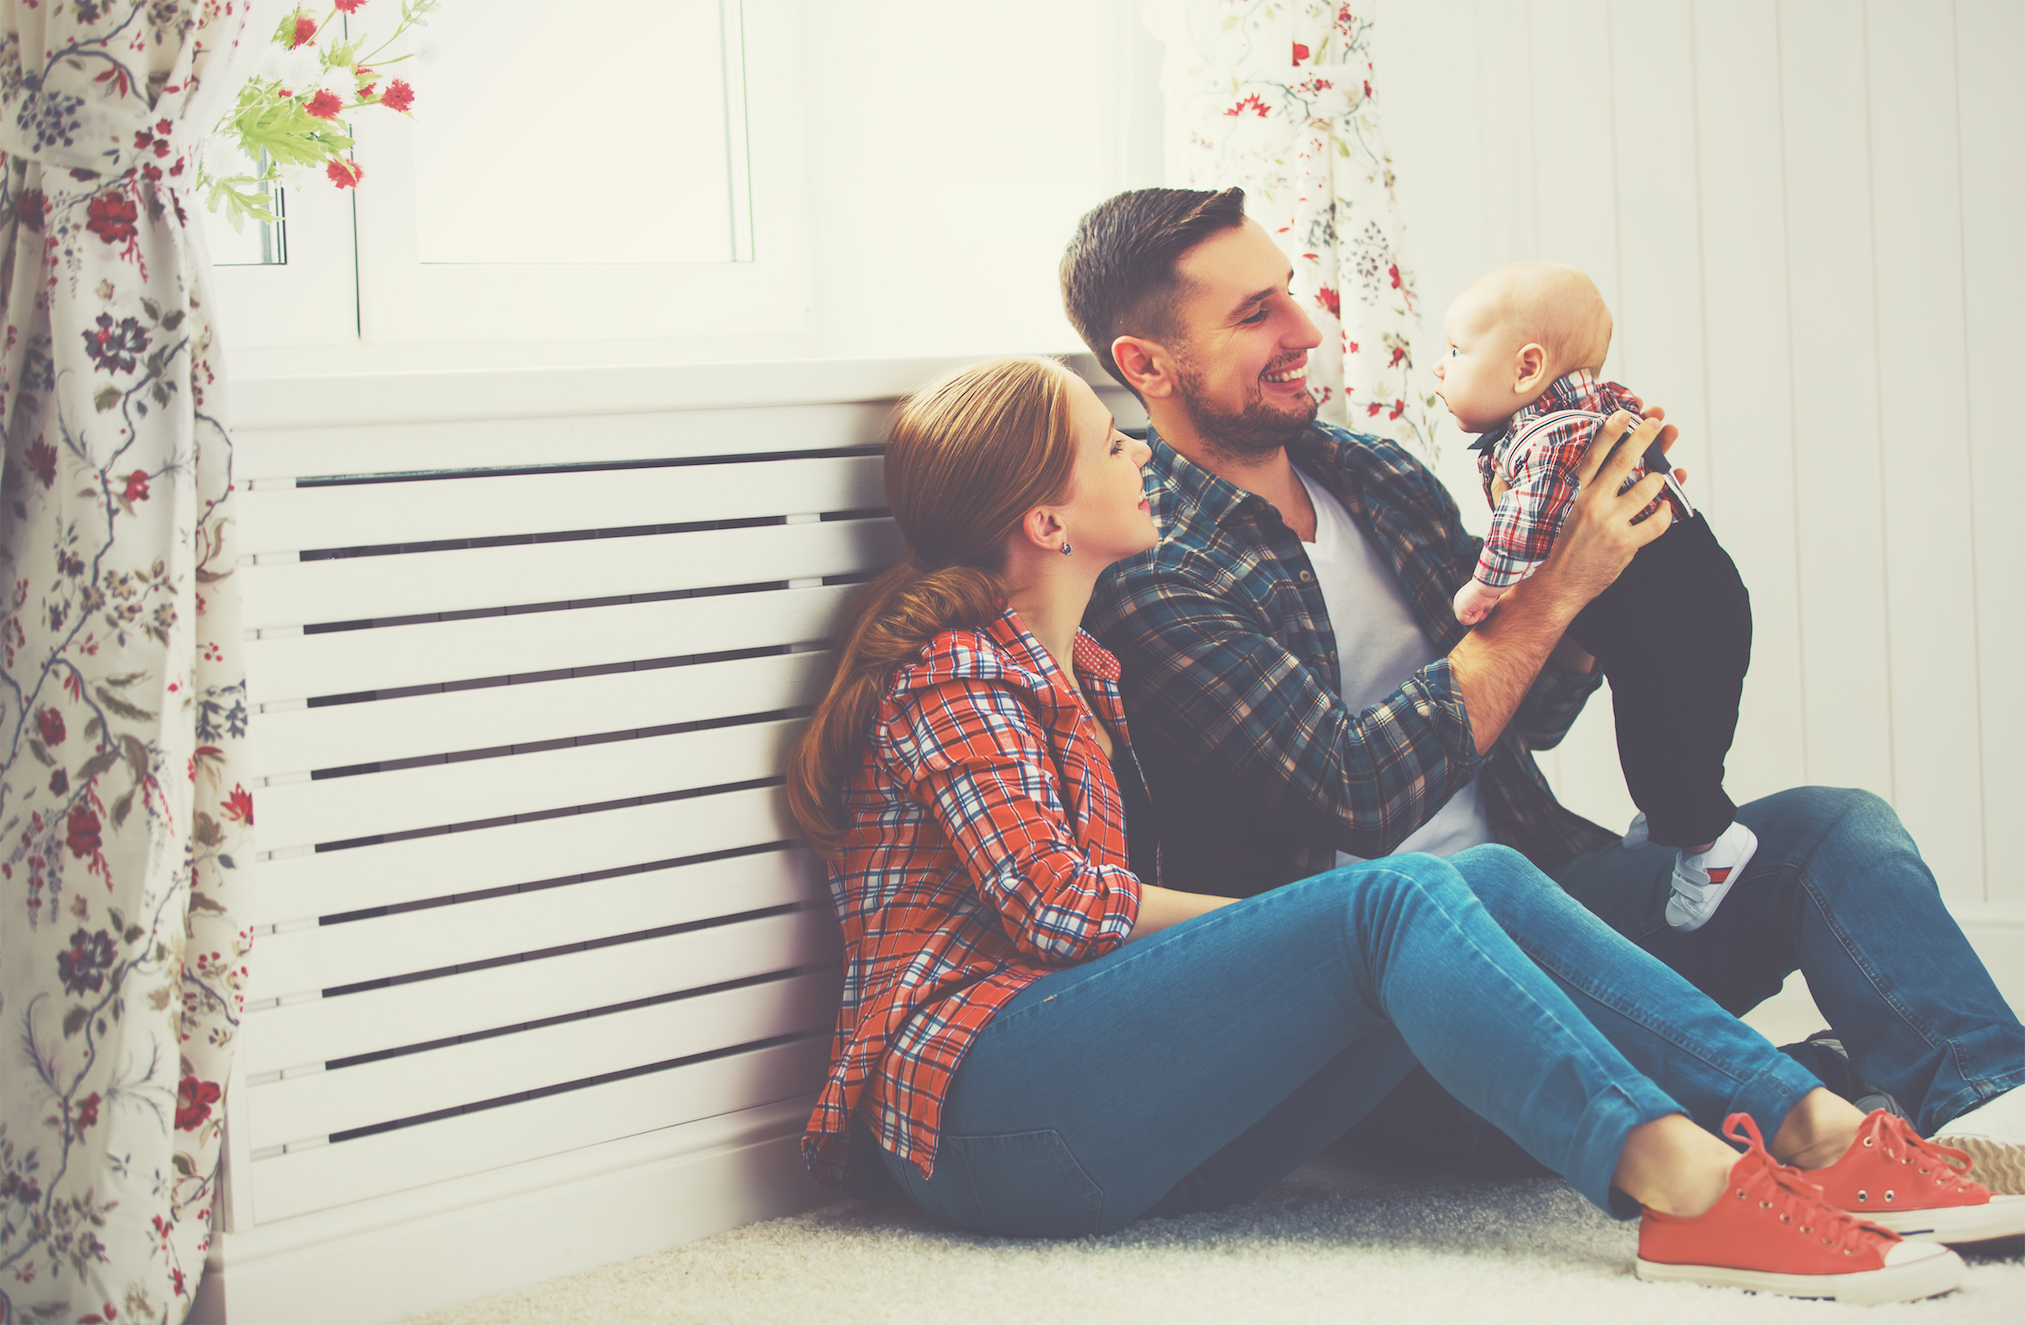 happy-mother-father-playing-baby_millennial-housing-trends.jpg